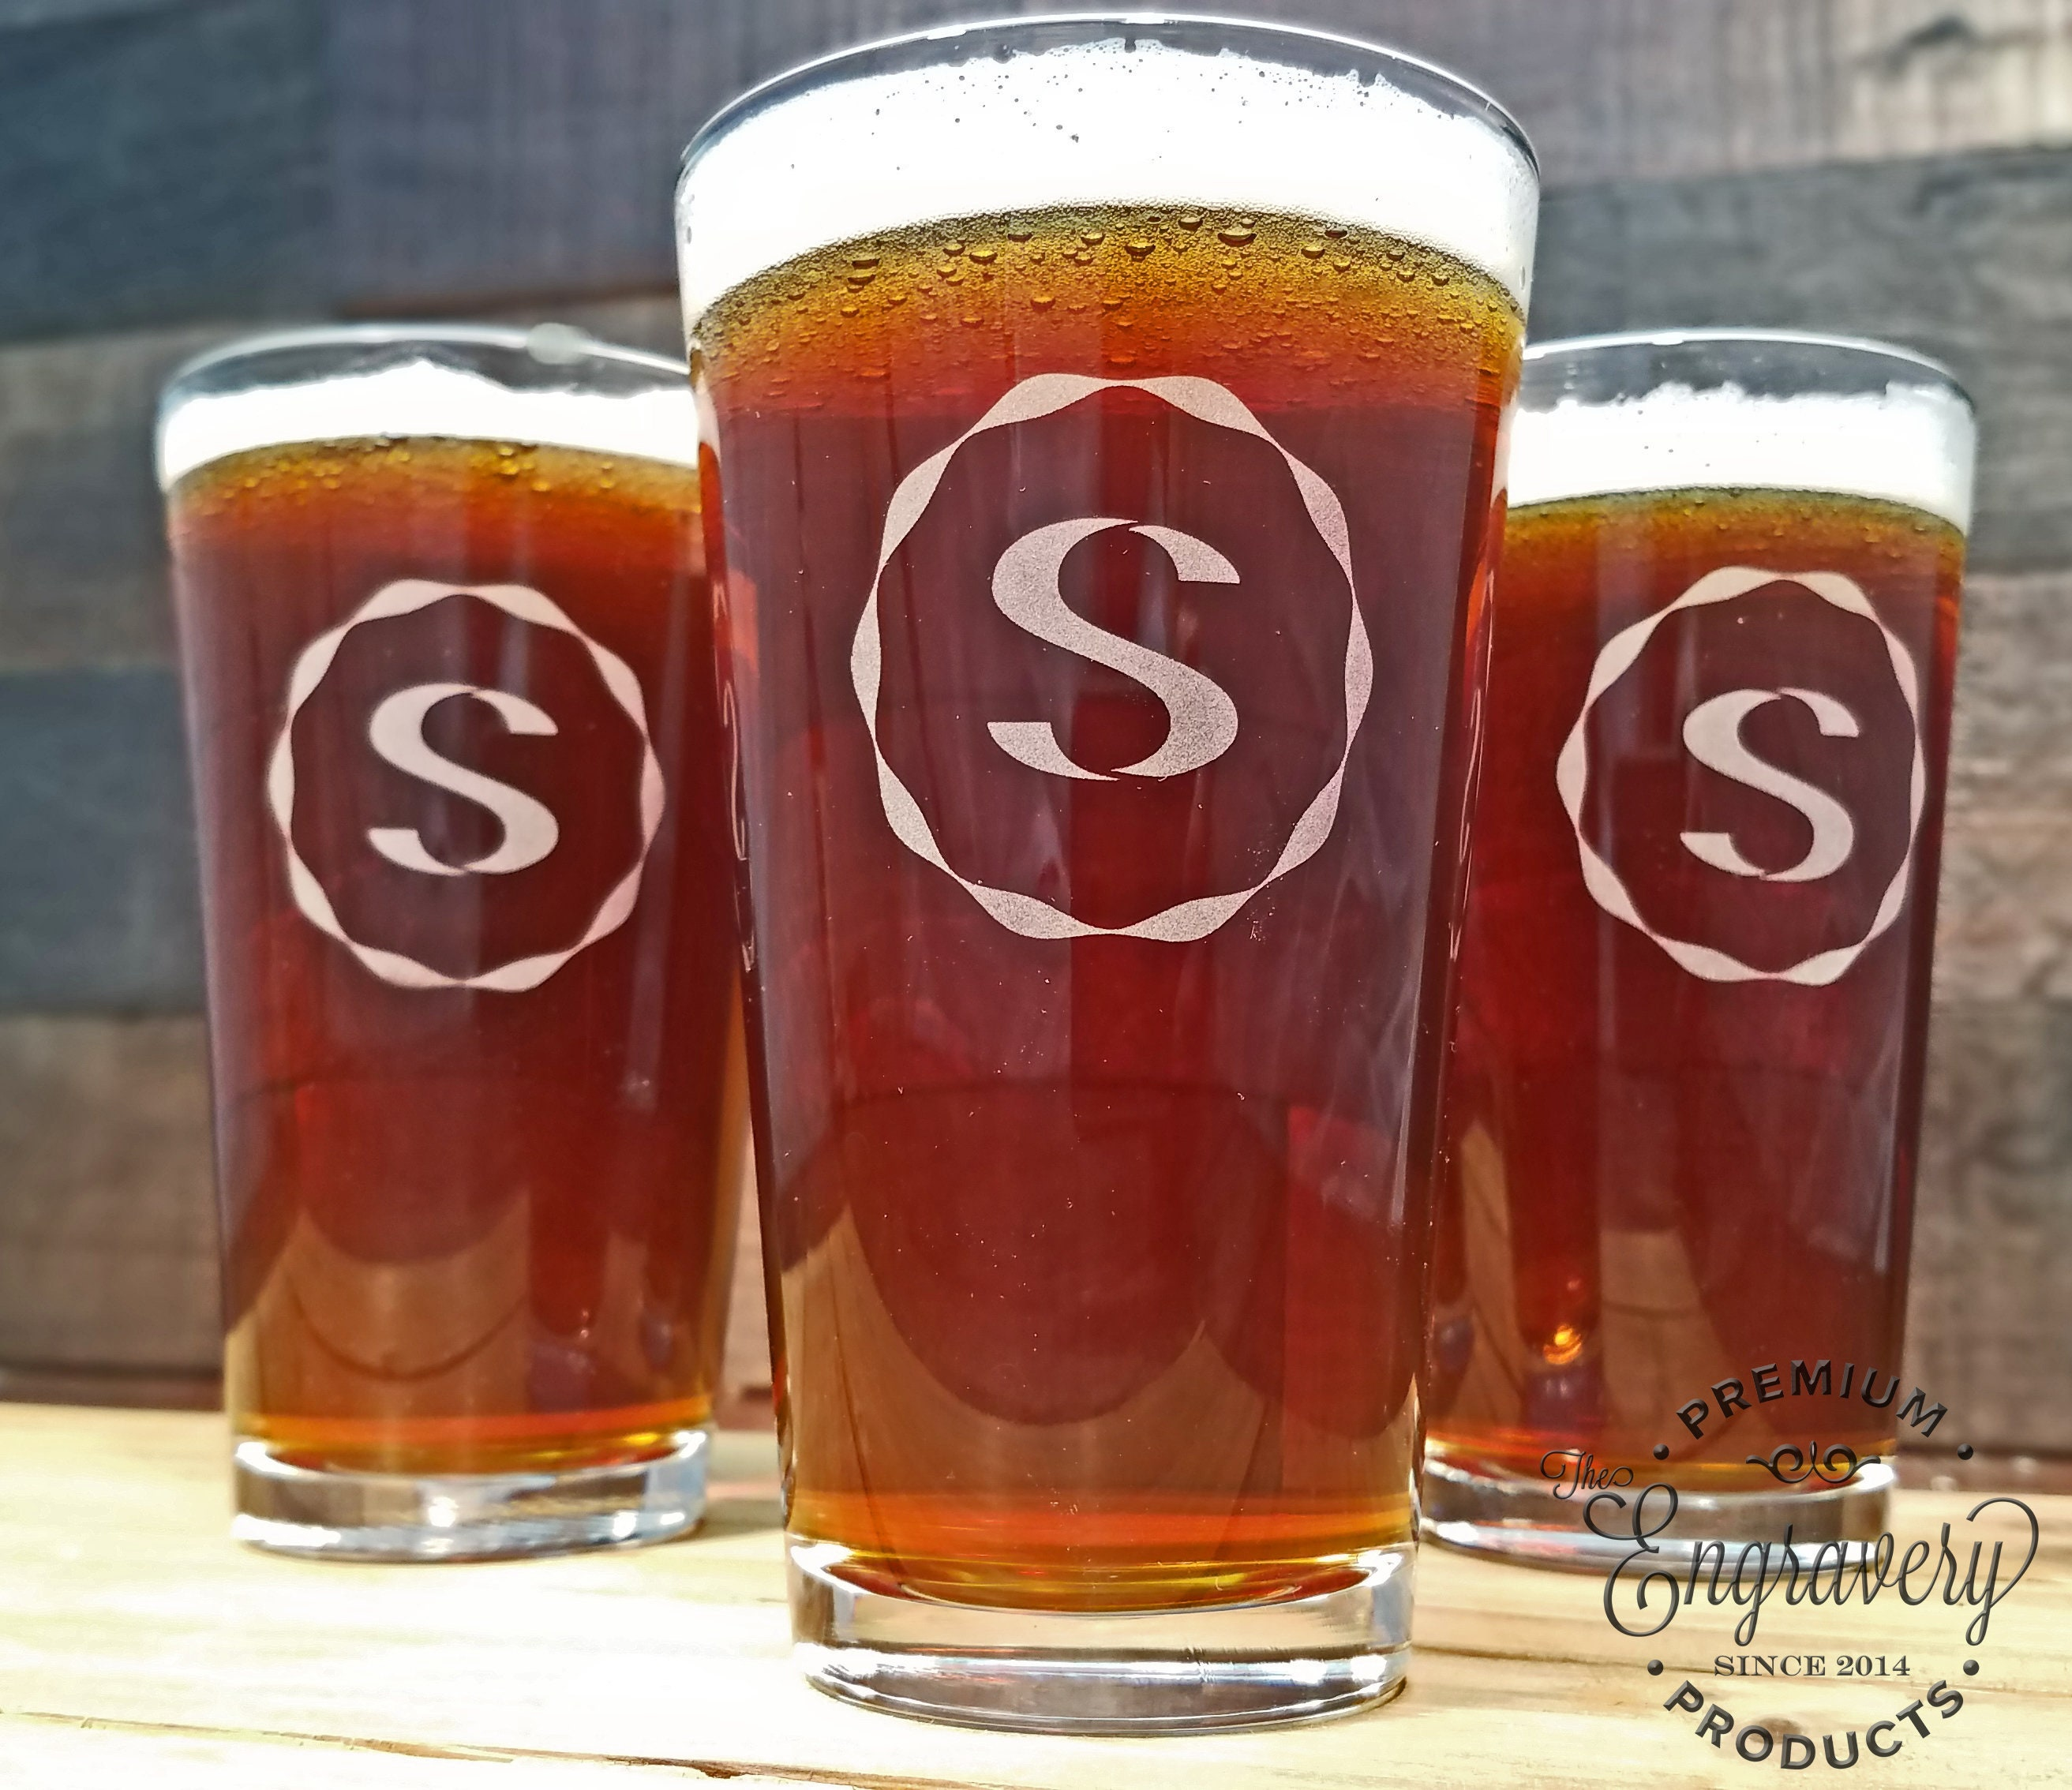 Fathers Day Gift Ideas, Monogrammed Beer Glass, Personalized Beer ...